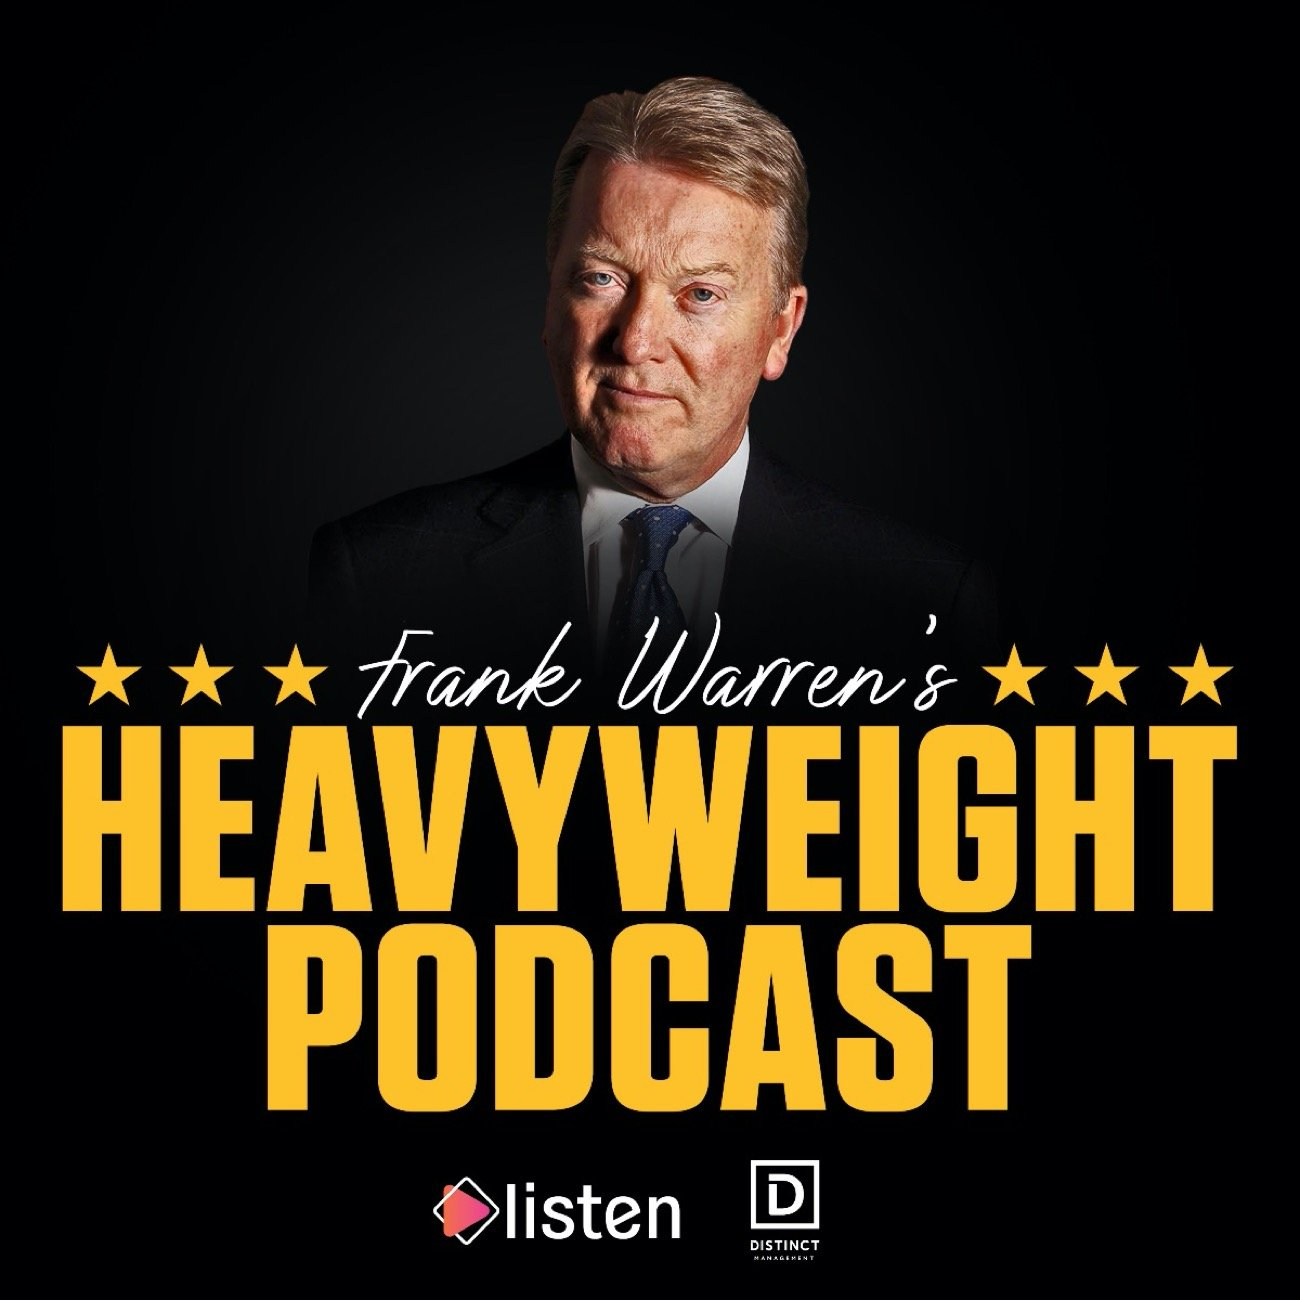 Frank Warren - Hall of Fame promoter Frank Warren has paired up with audio powerhouse Listen to bring a truly 'heavyweight' podcast to fans across the globe - Frank Warren's Heavyweight Podcast - and Episode 1 is AVAILABLE NOW!